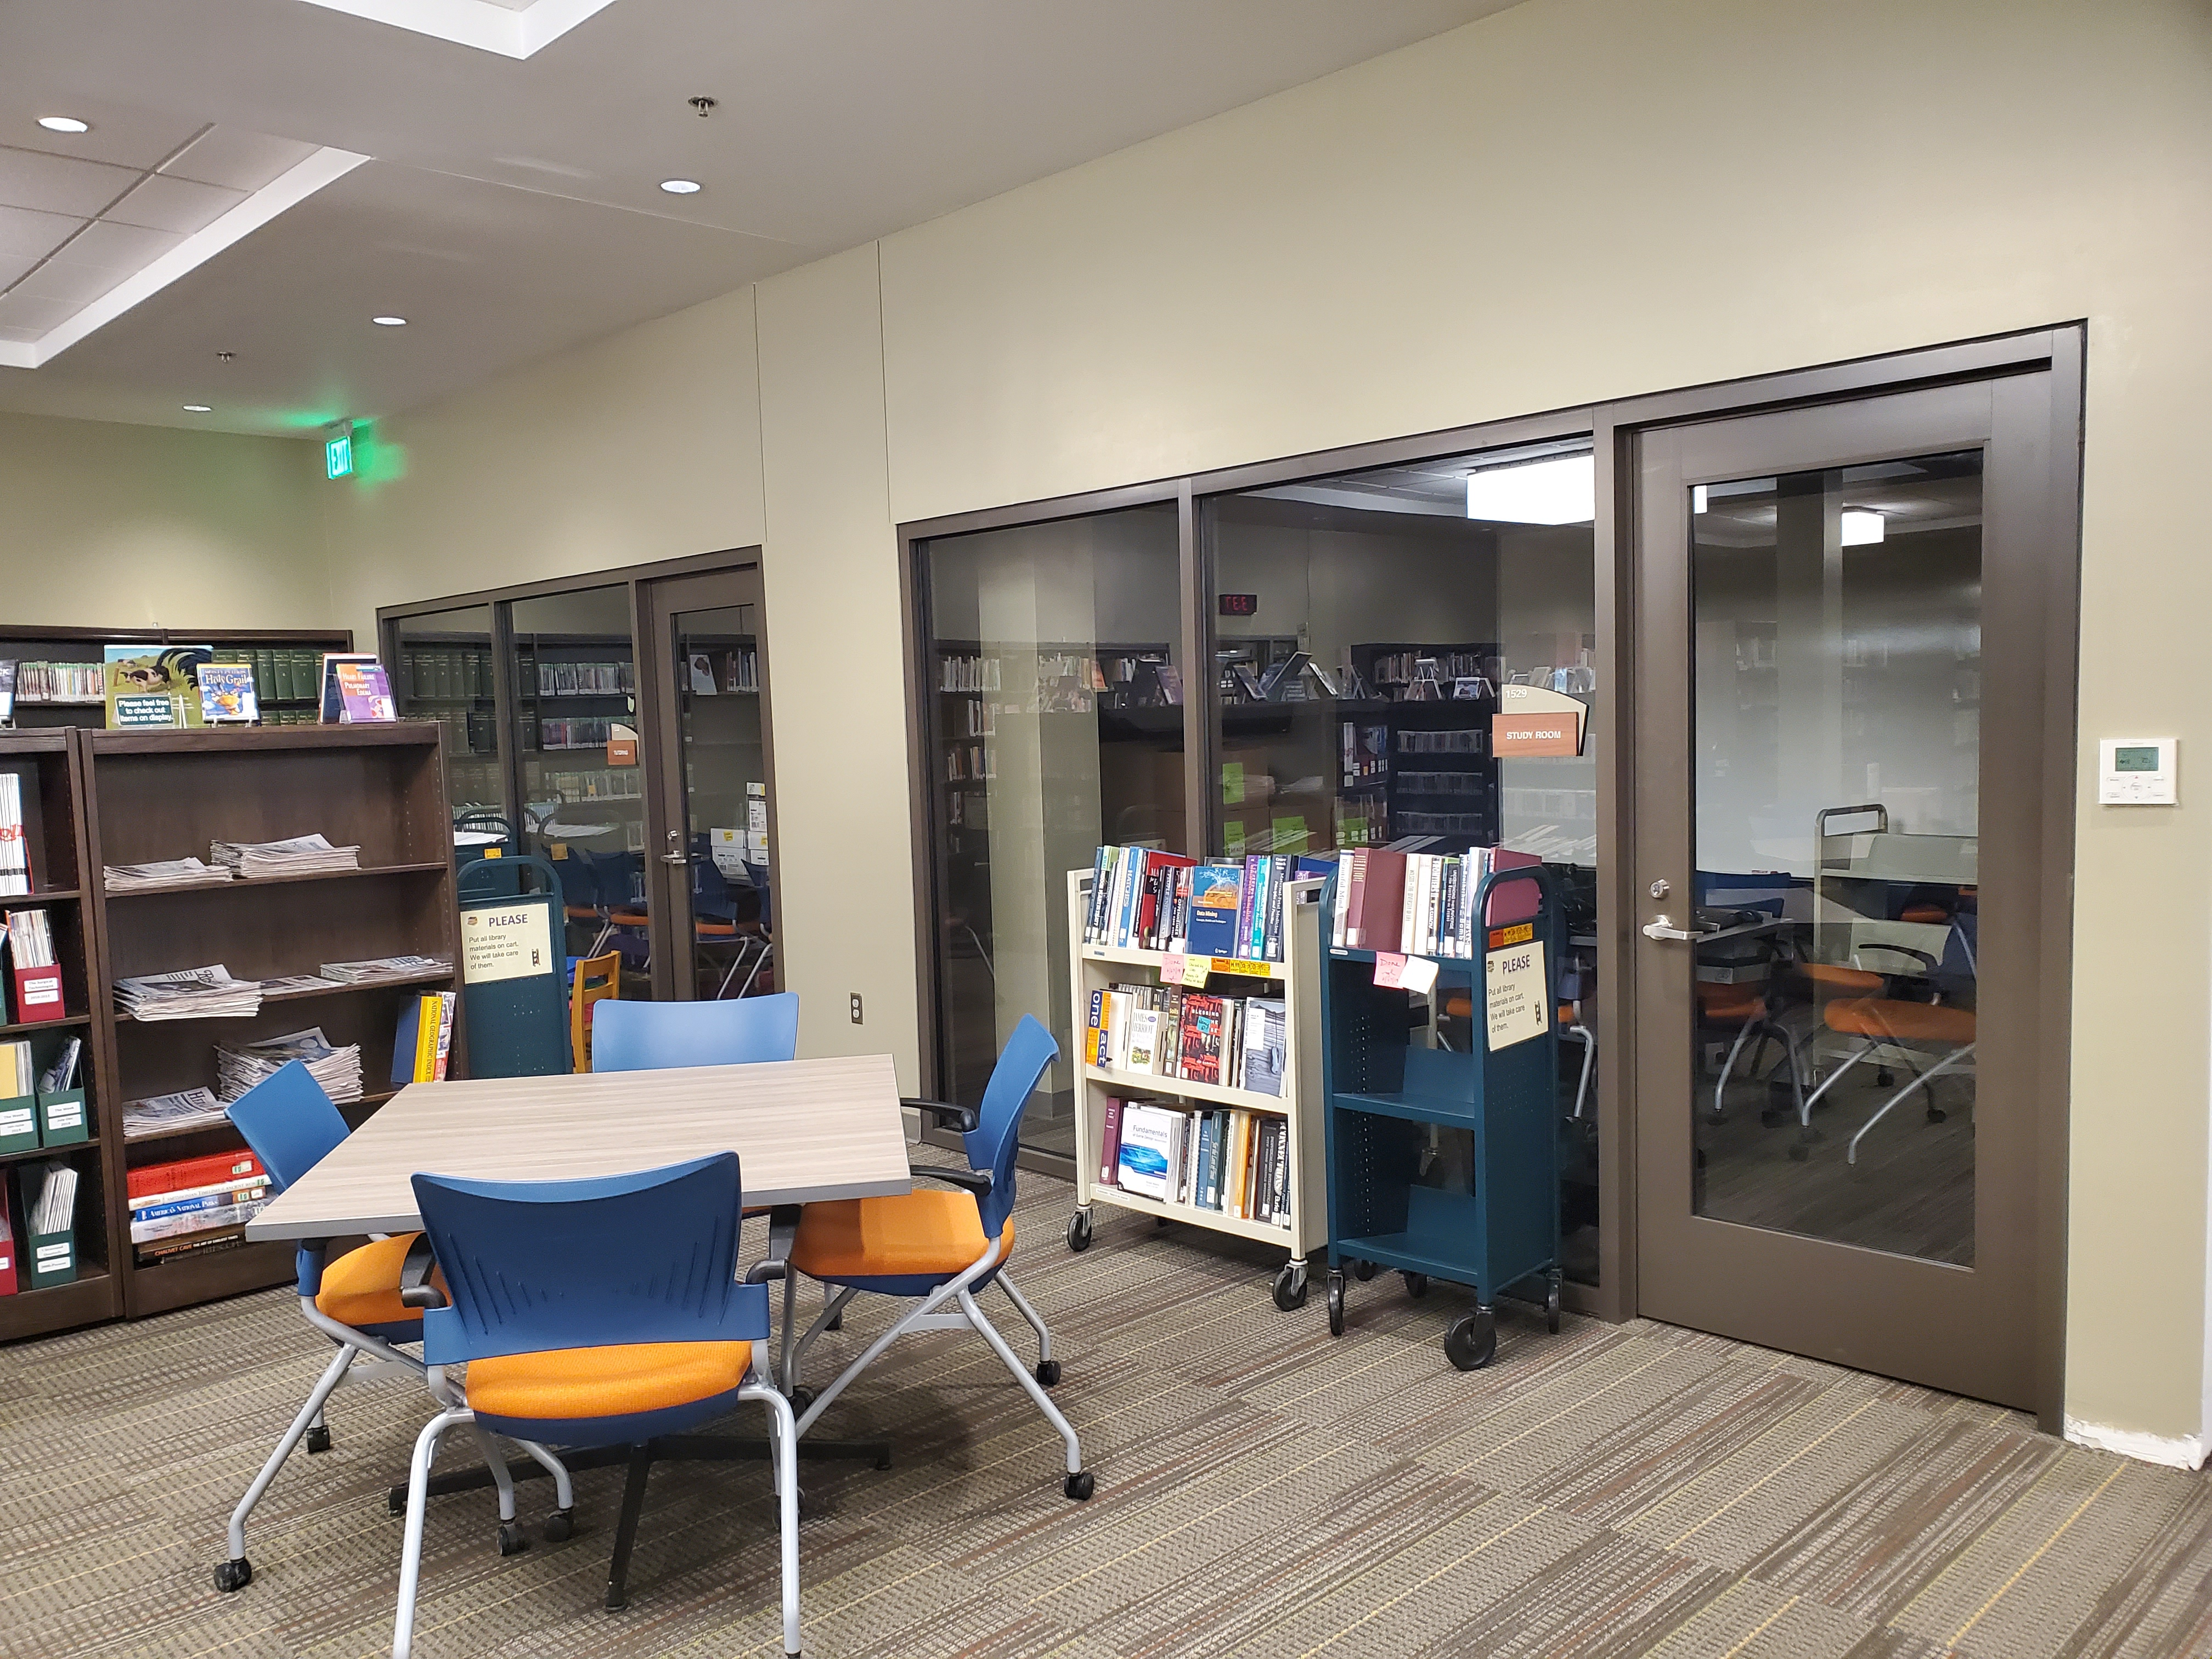 Image of 2 small study rooms